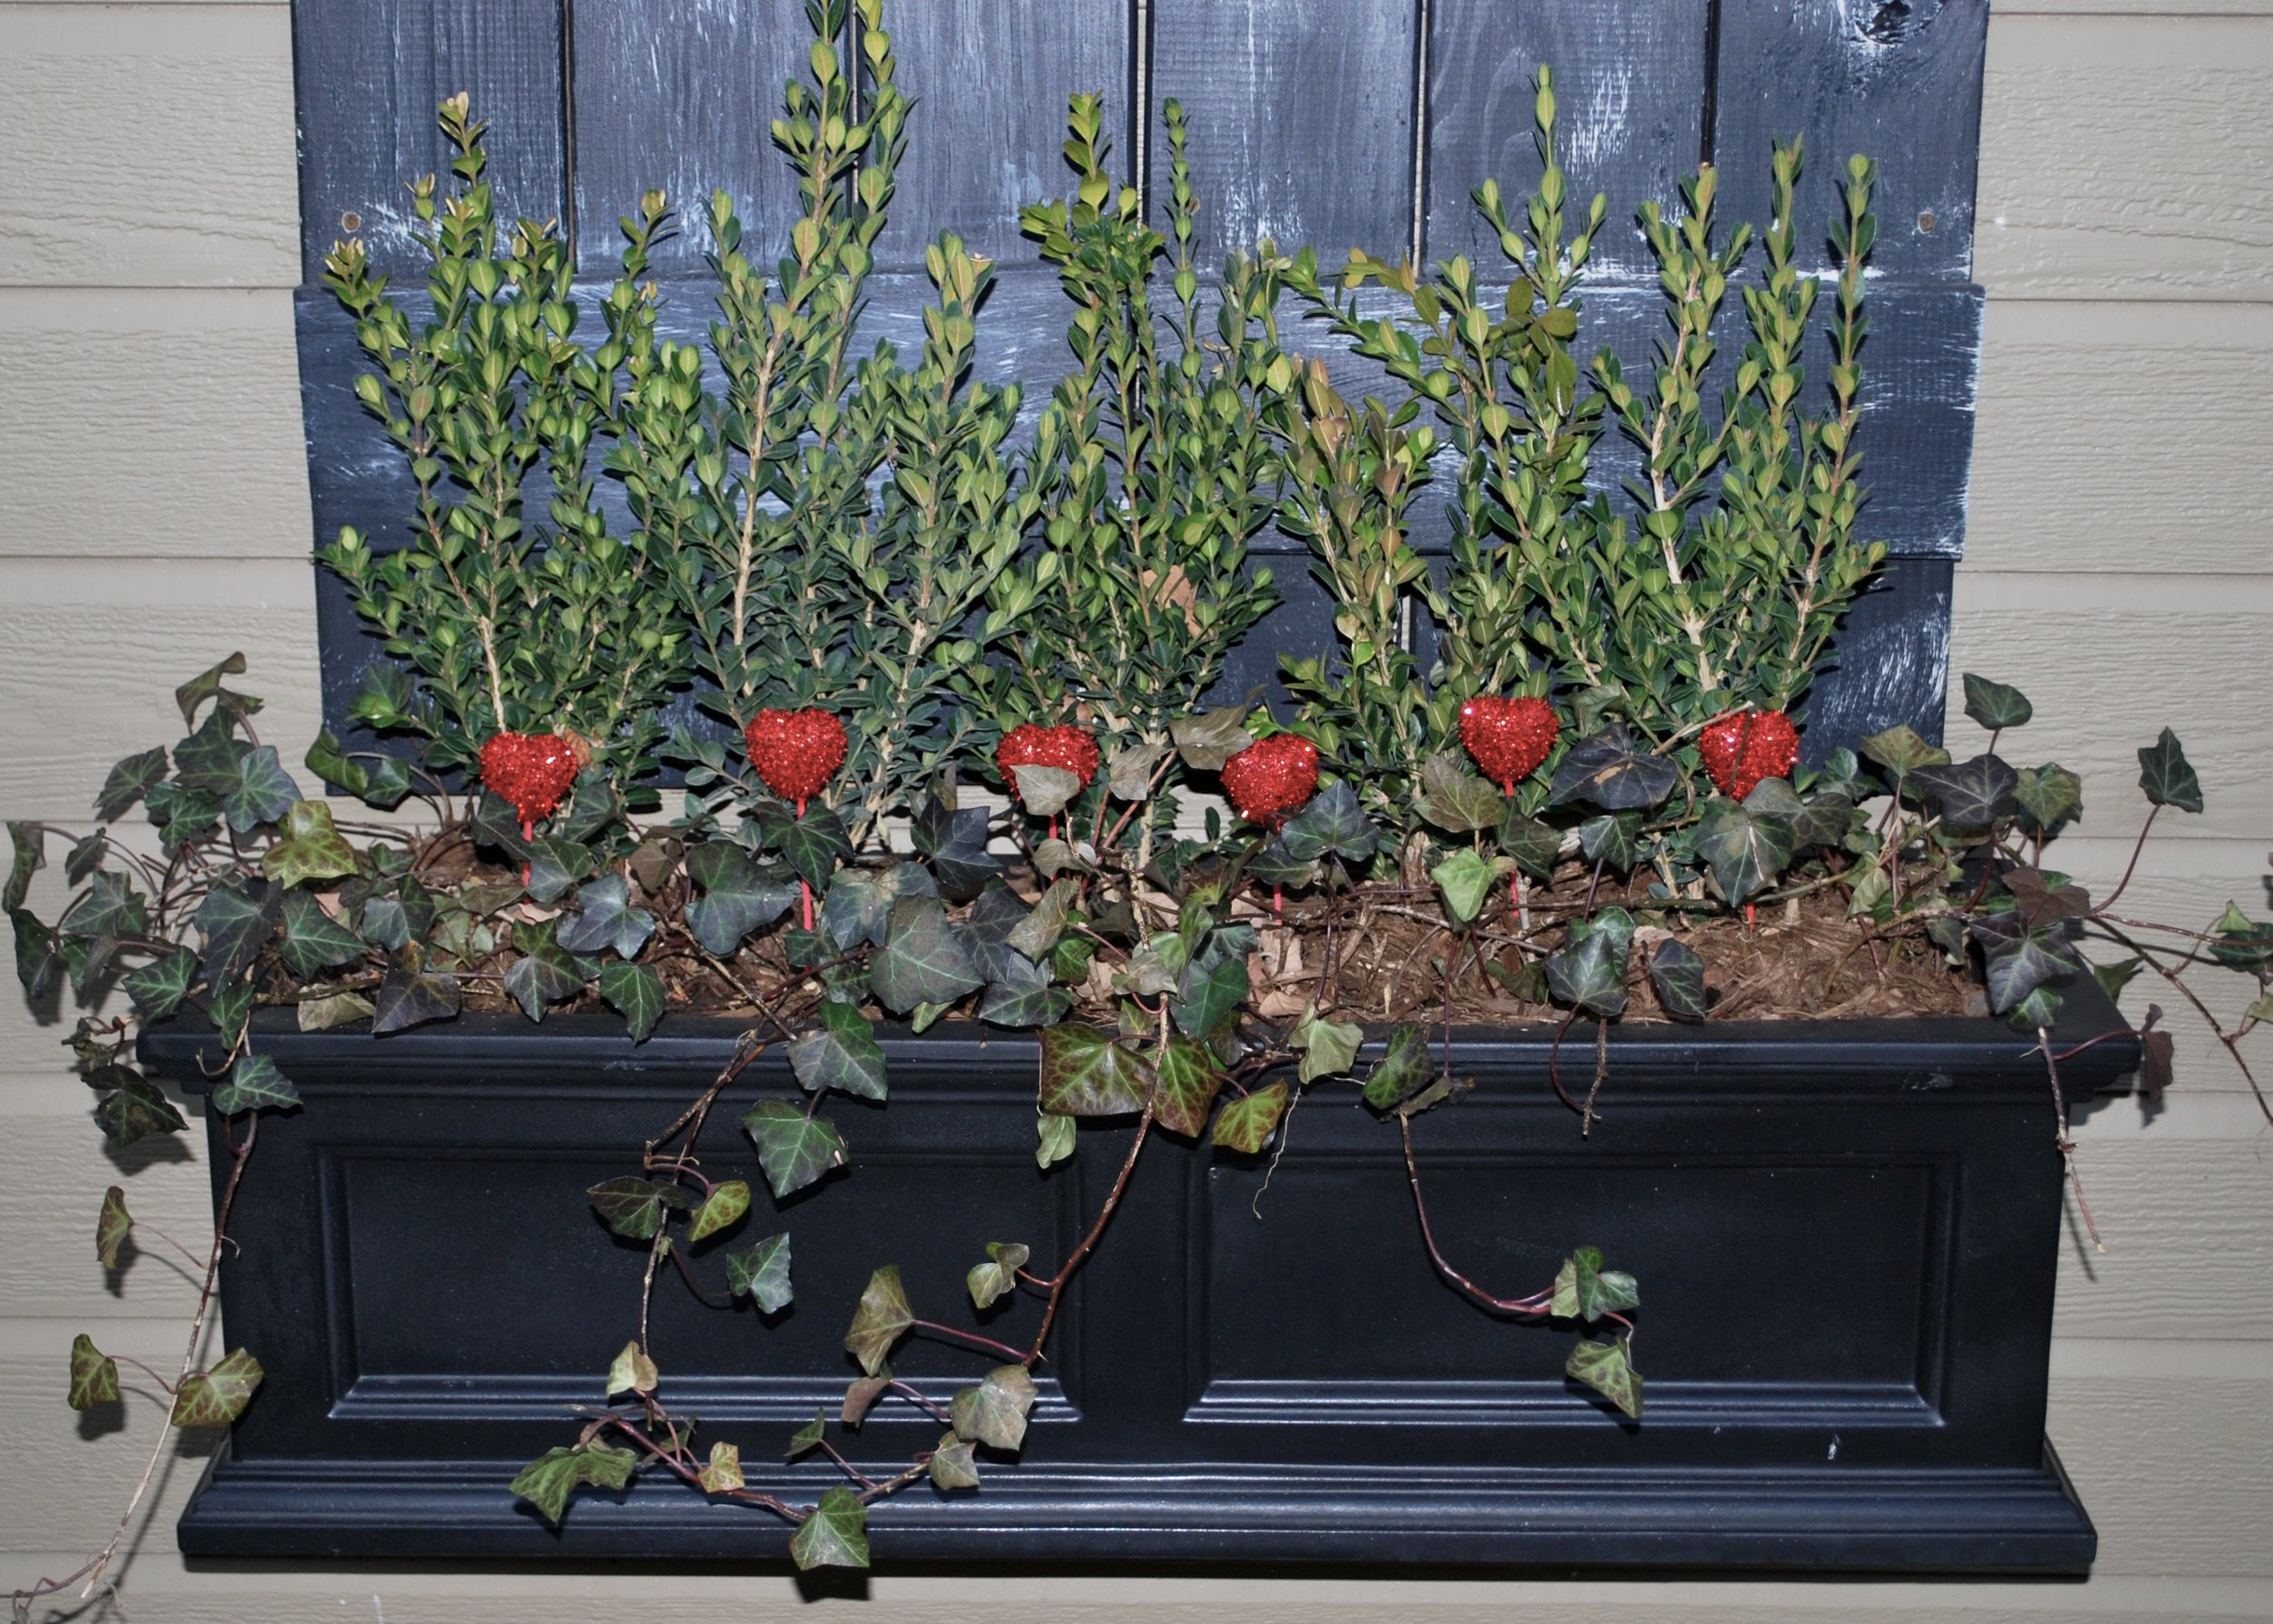 Seasonal decor in pots - why not?  I don't know about you, but I really miss COLOR in my outdoor planters. Why not add some cute, colorful Valentines decor to brighten things up? I added some sweet red hearts to my window box and it's pretty festive. By the time Easter rolls around, it will be warm enough for flowers to survive in our outdoor pots, but you can always add some Easter decor too. My favorite seasons to add decor are fall and Christmas. I love adding pumpkins to my pots in the fall, sadly sometimes the squirrels love it also. Fun decor options for holiday pots are pinecones, berries, red twig dogwood sticks and ornaments. Be creative and have fun with it!